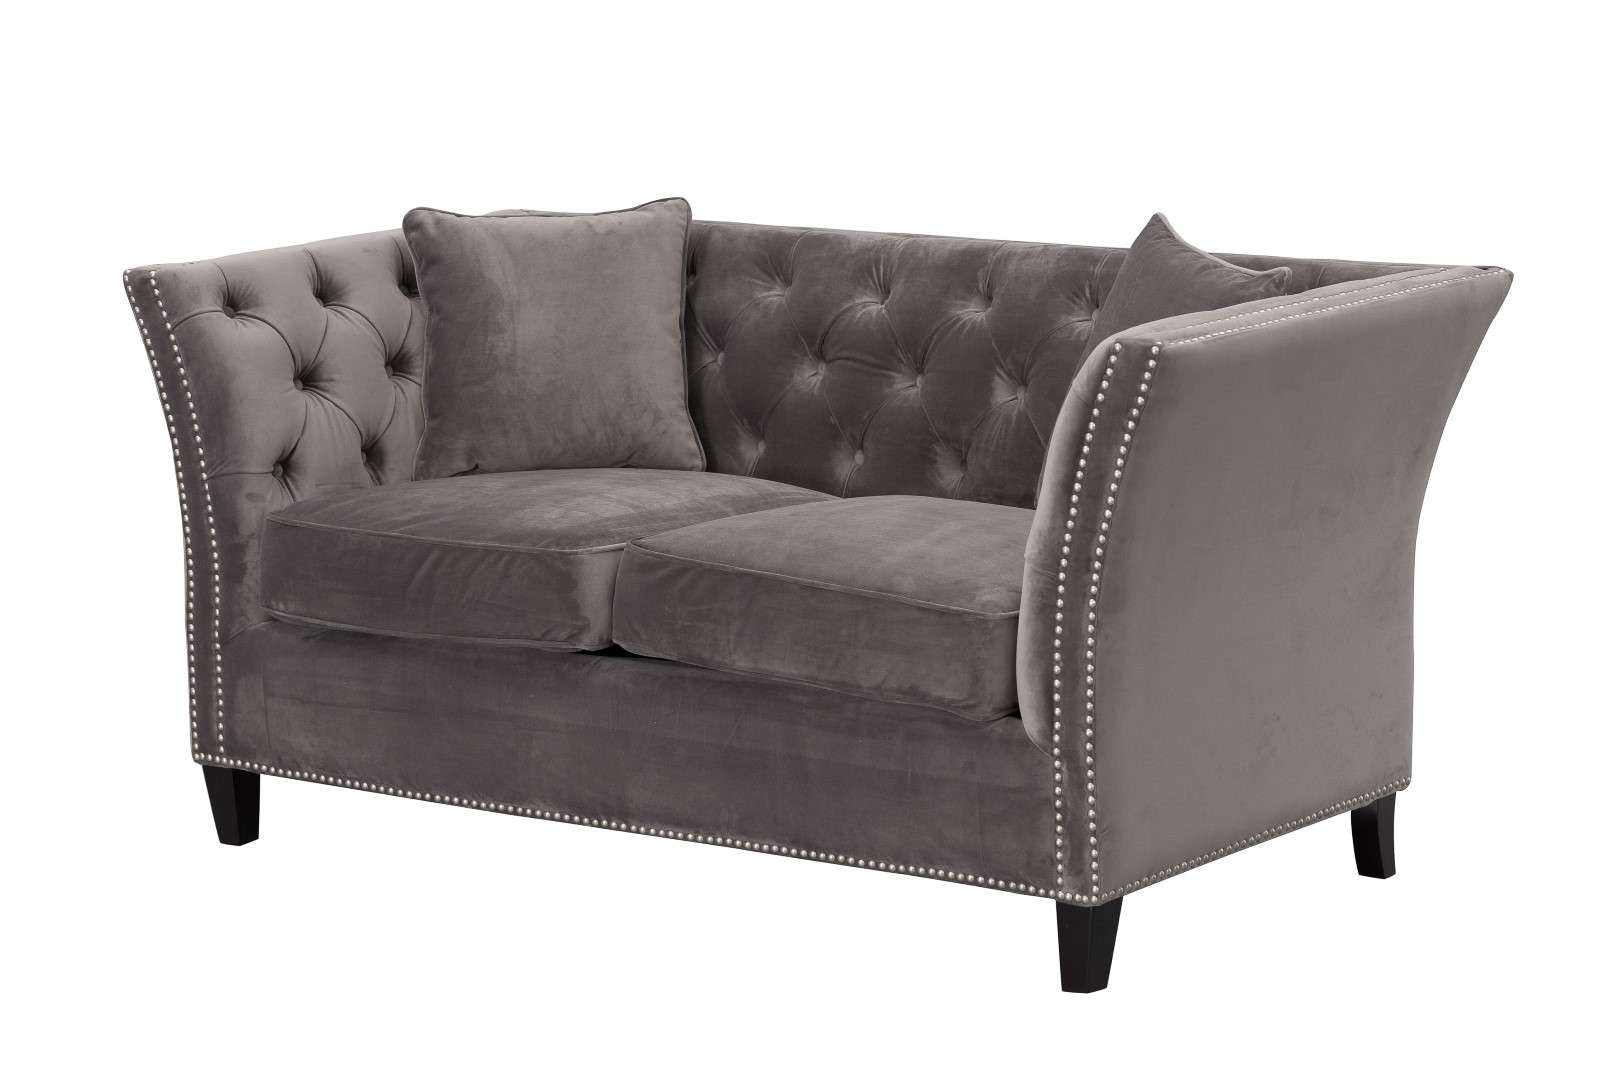 chesterfield sofa modern pillows on brown leather velvet dark grey 2 sitzer dekoria